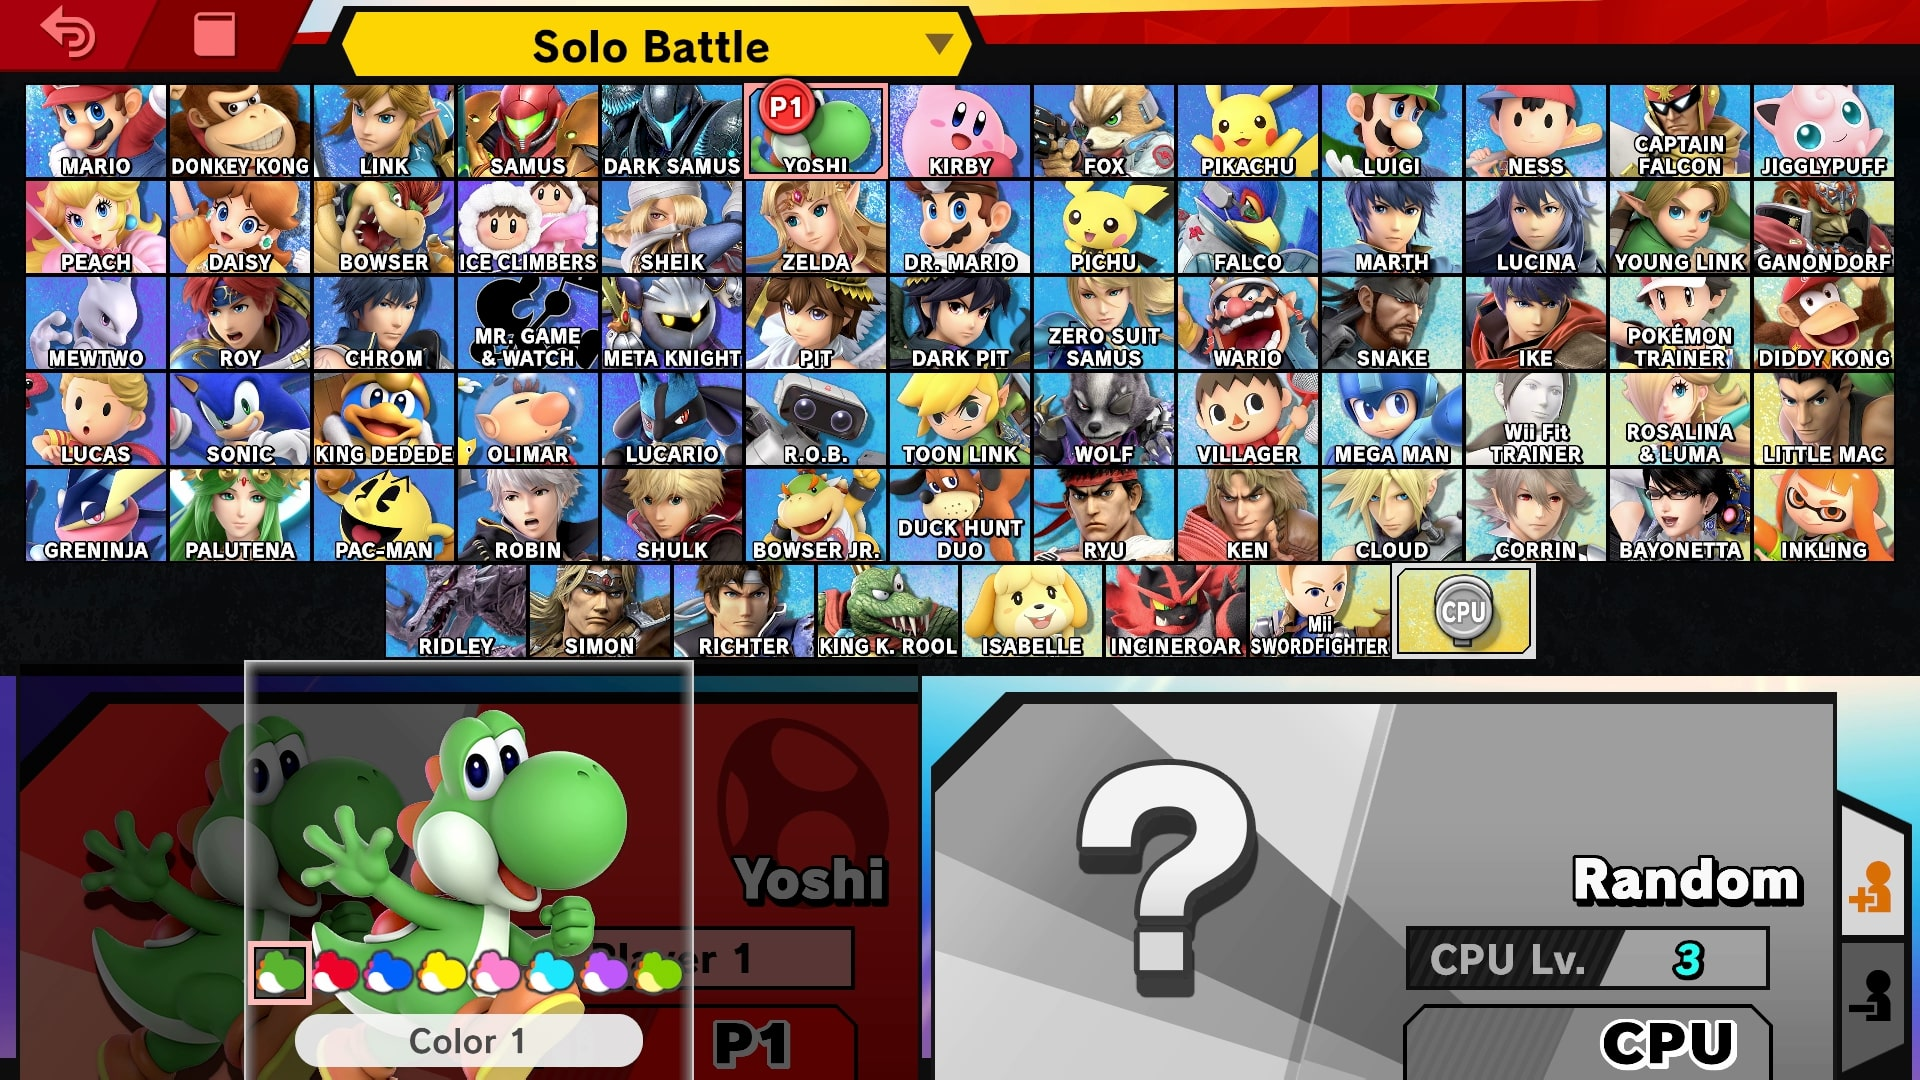 yoshi super smash bros ultimate guide unlock moves changes yoshi alternate costumes final. Black Bedroom Furniture Sets. Home Design Ideas